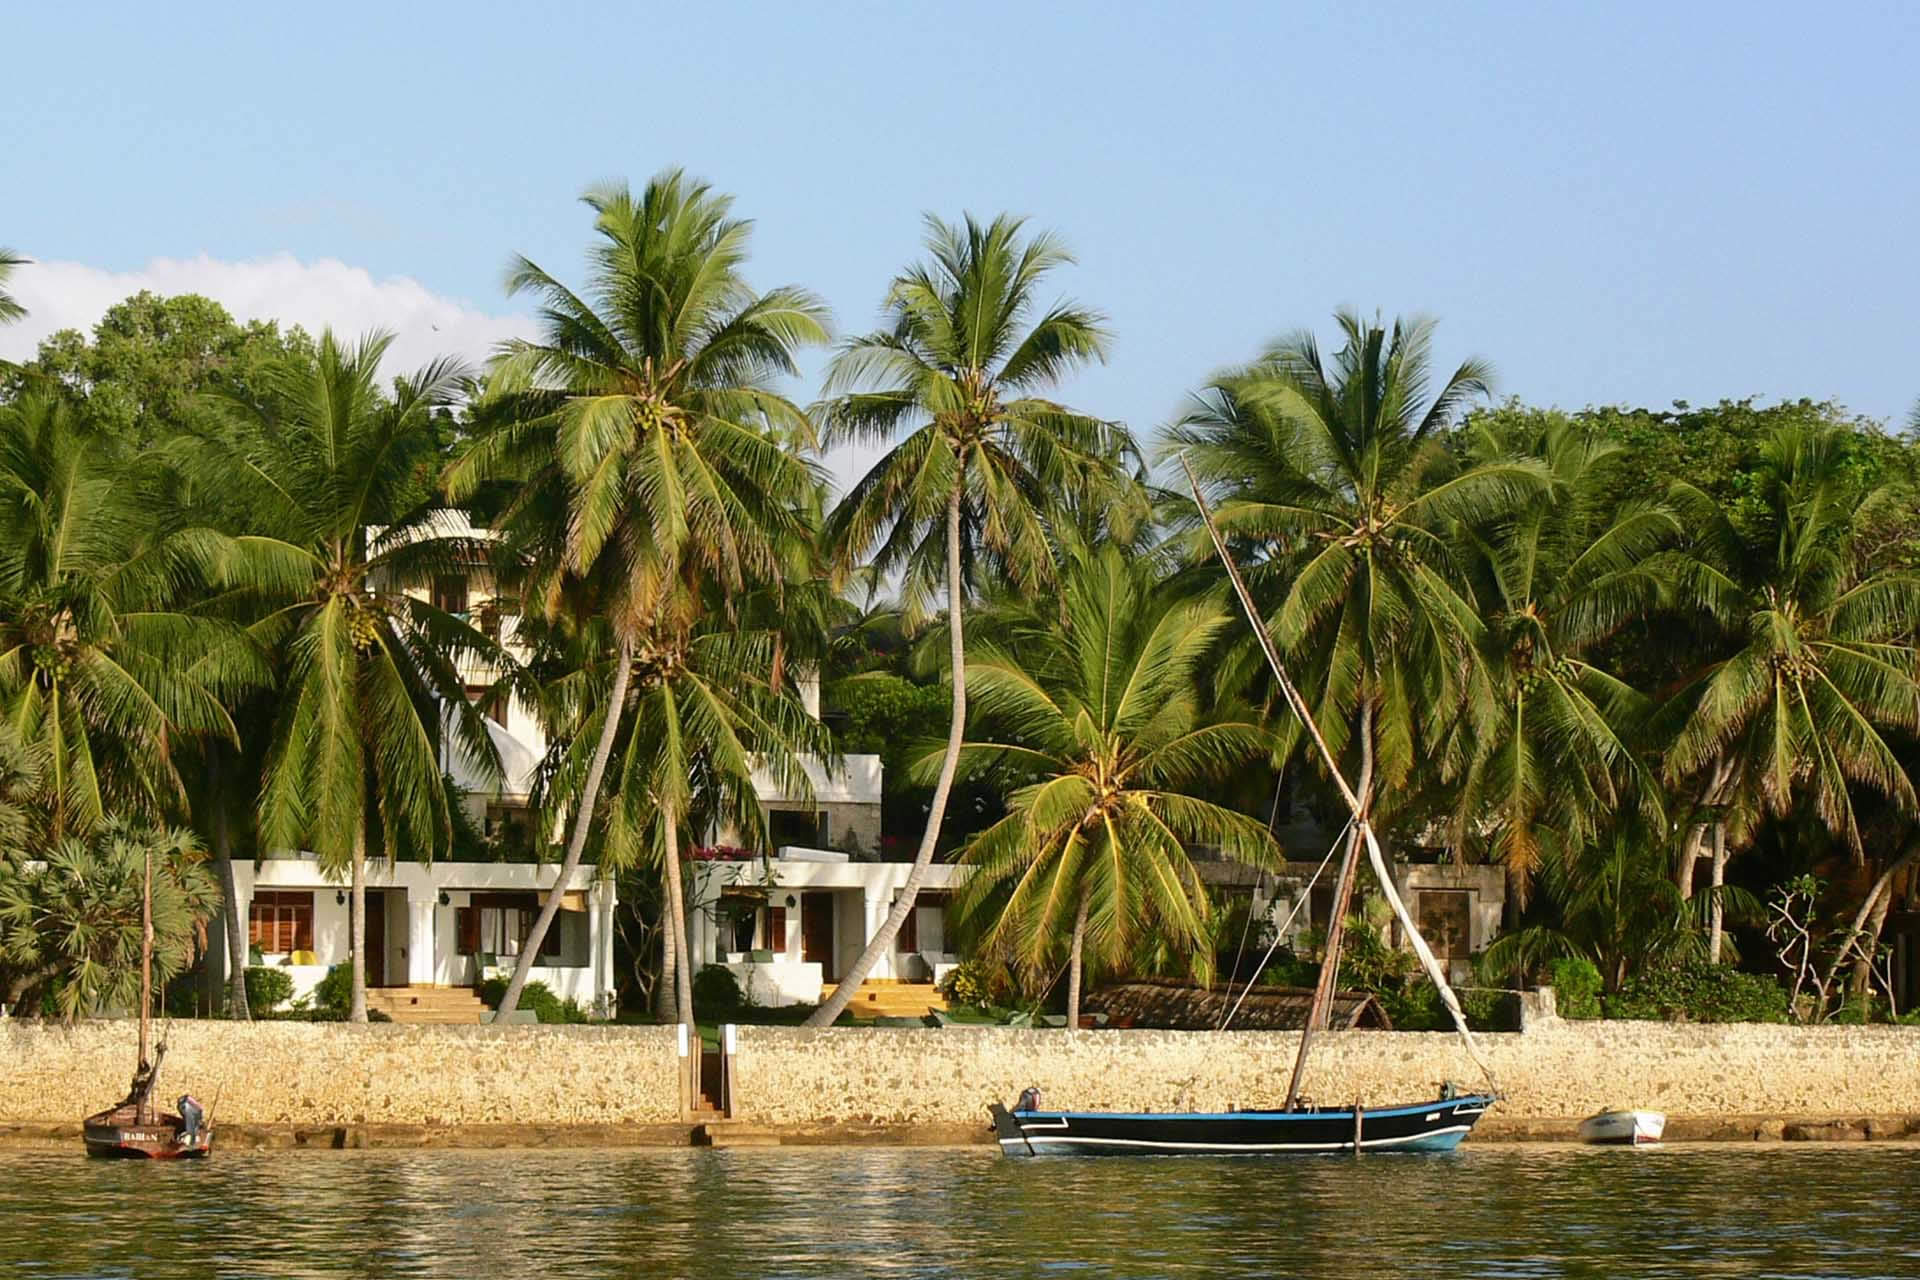 Holidays to dream of in Kenya